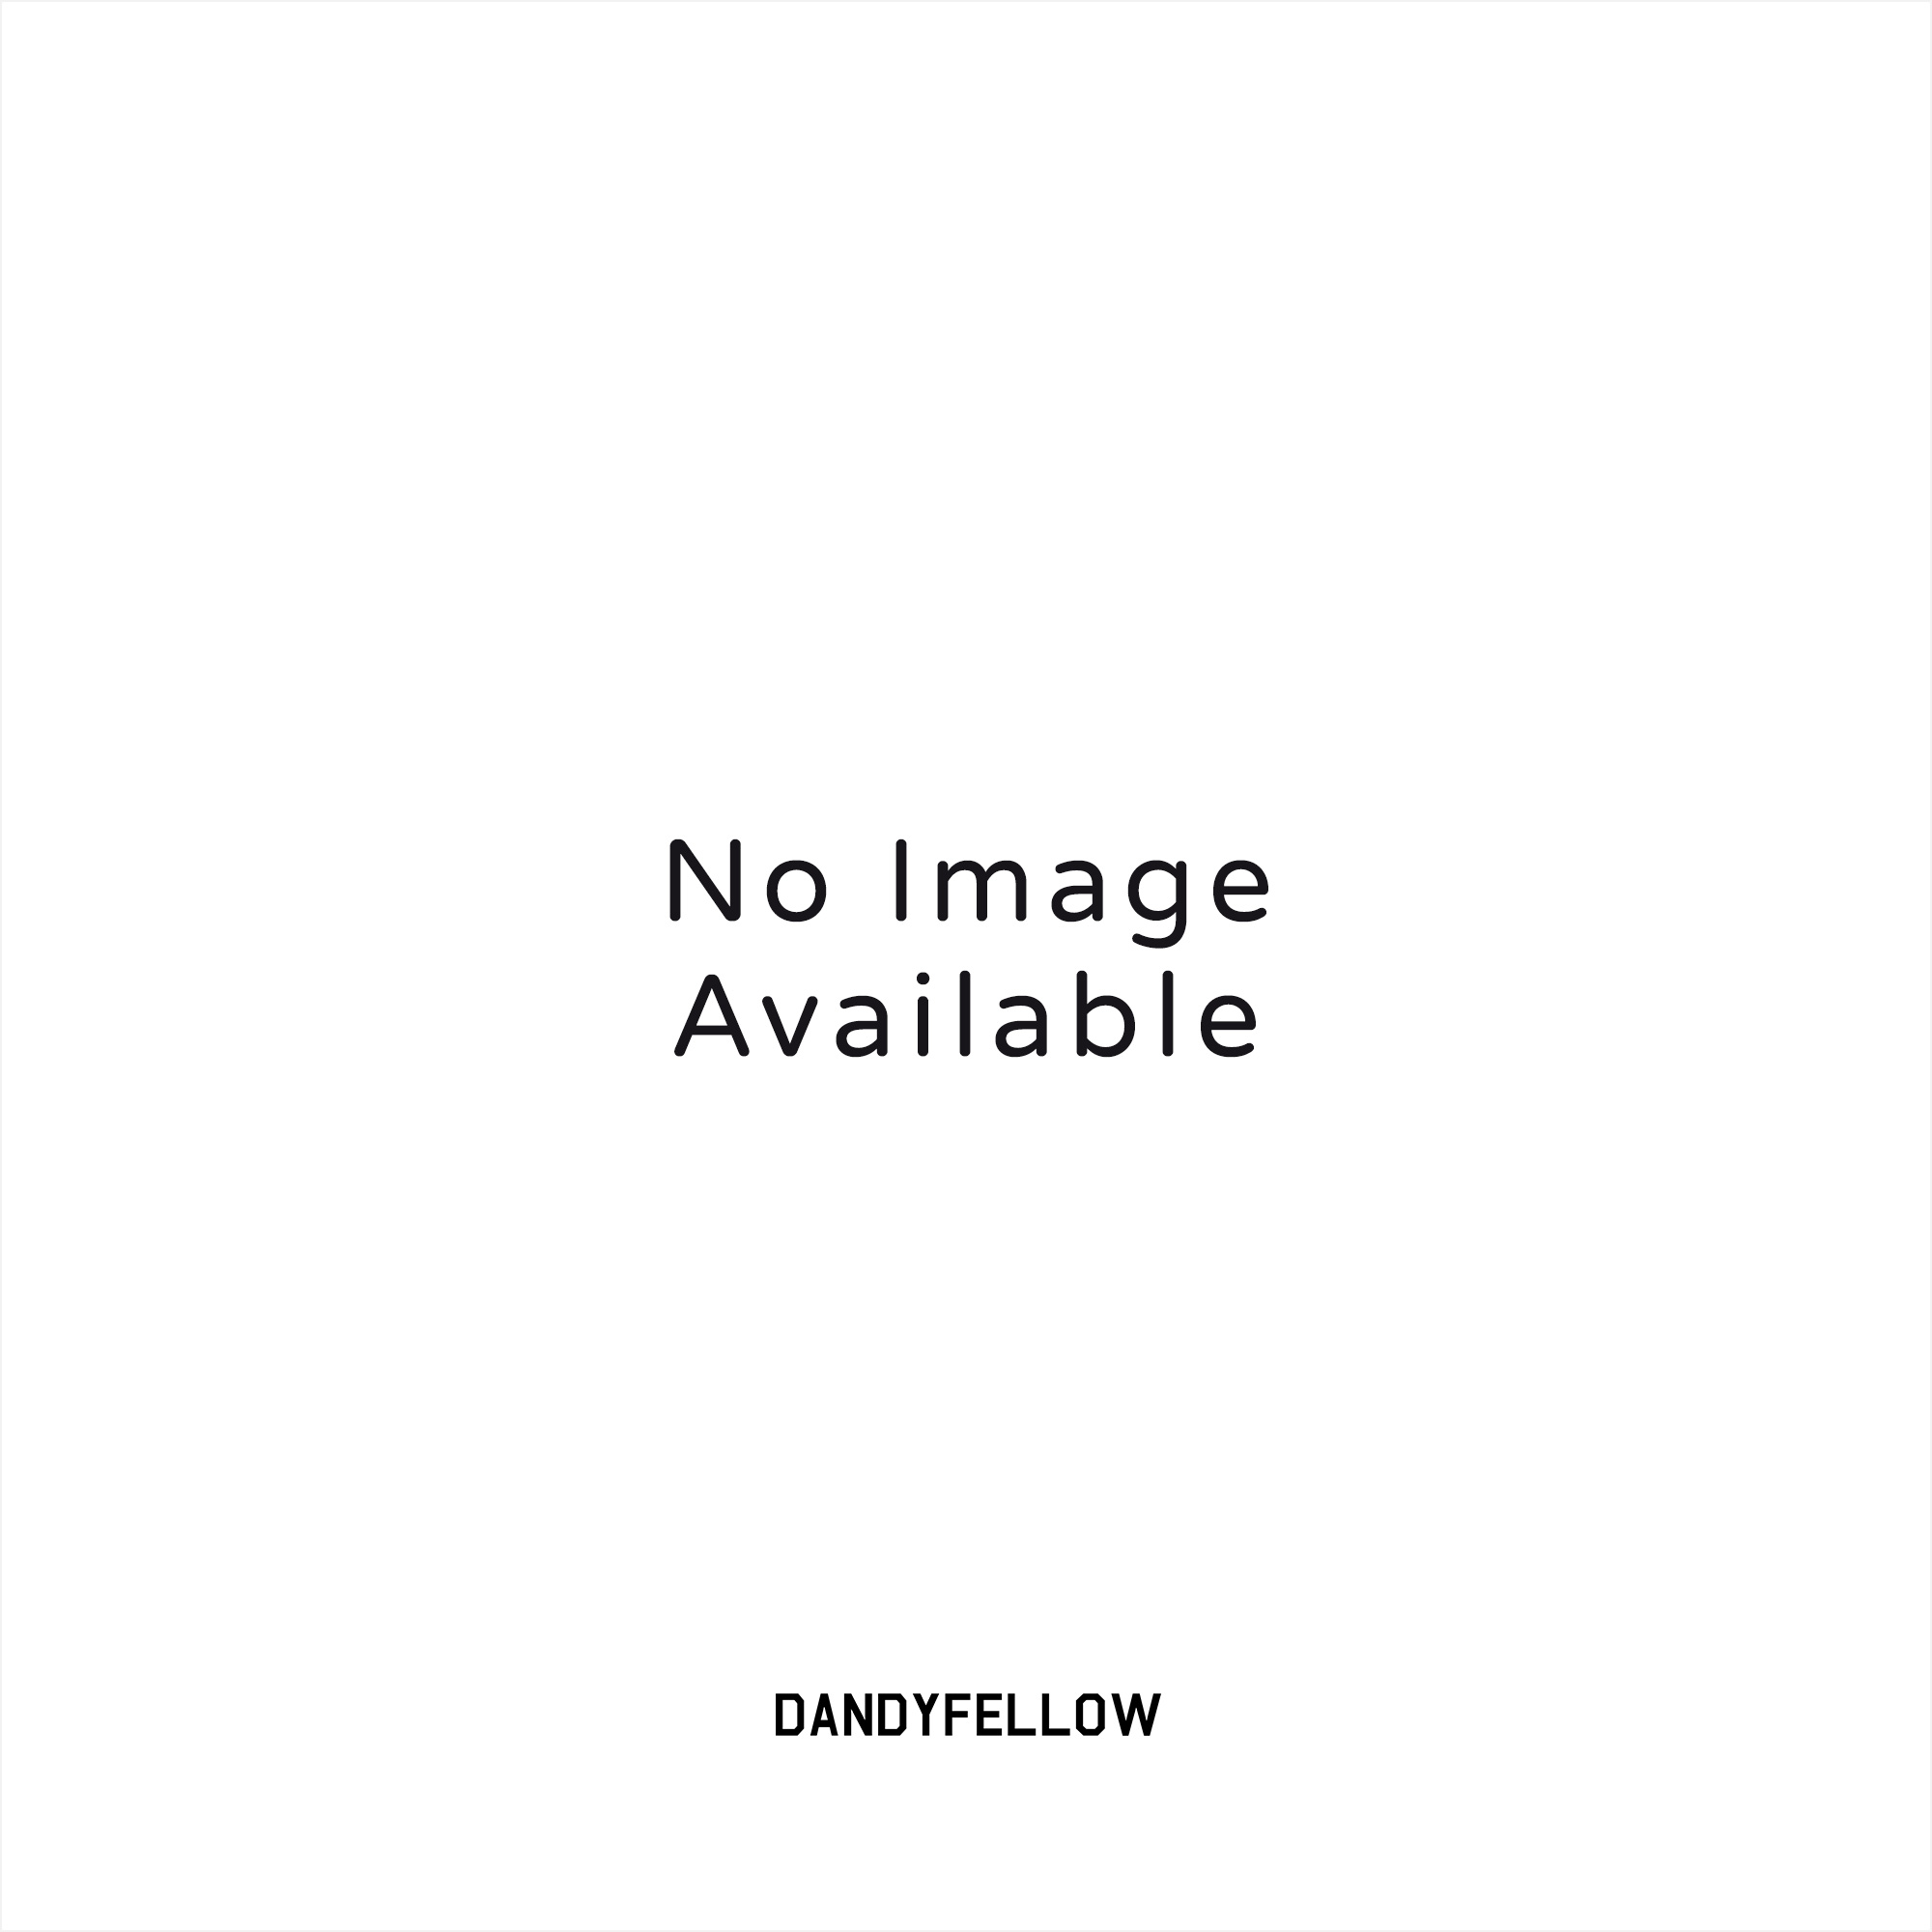 Burlington King Navy Green Argyle Socks 21020 6125